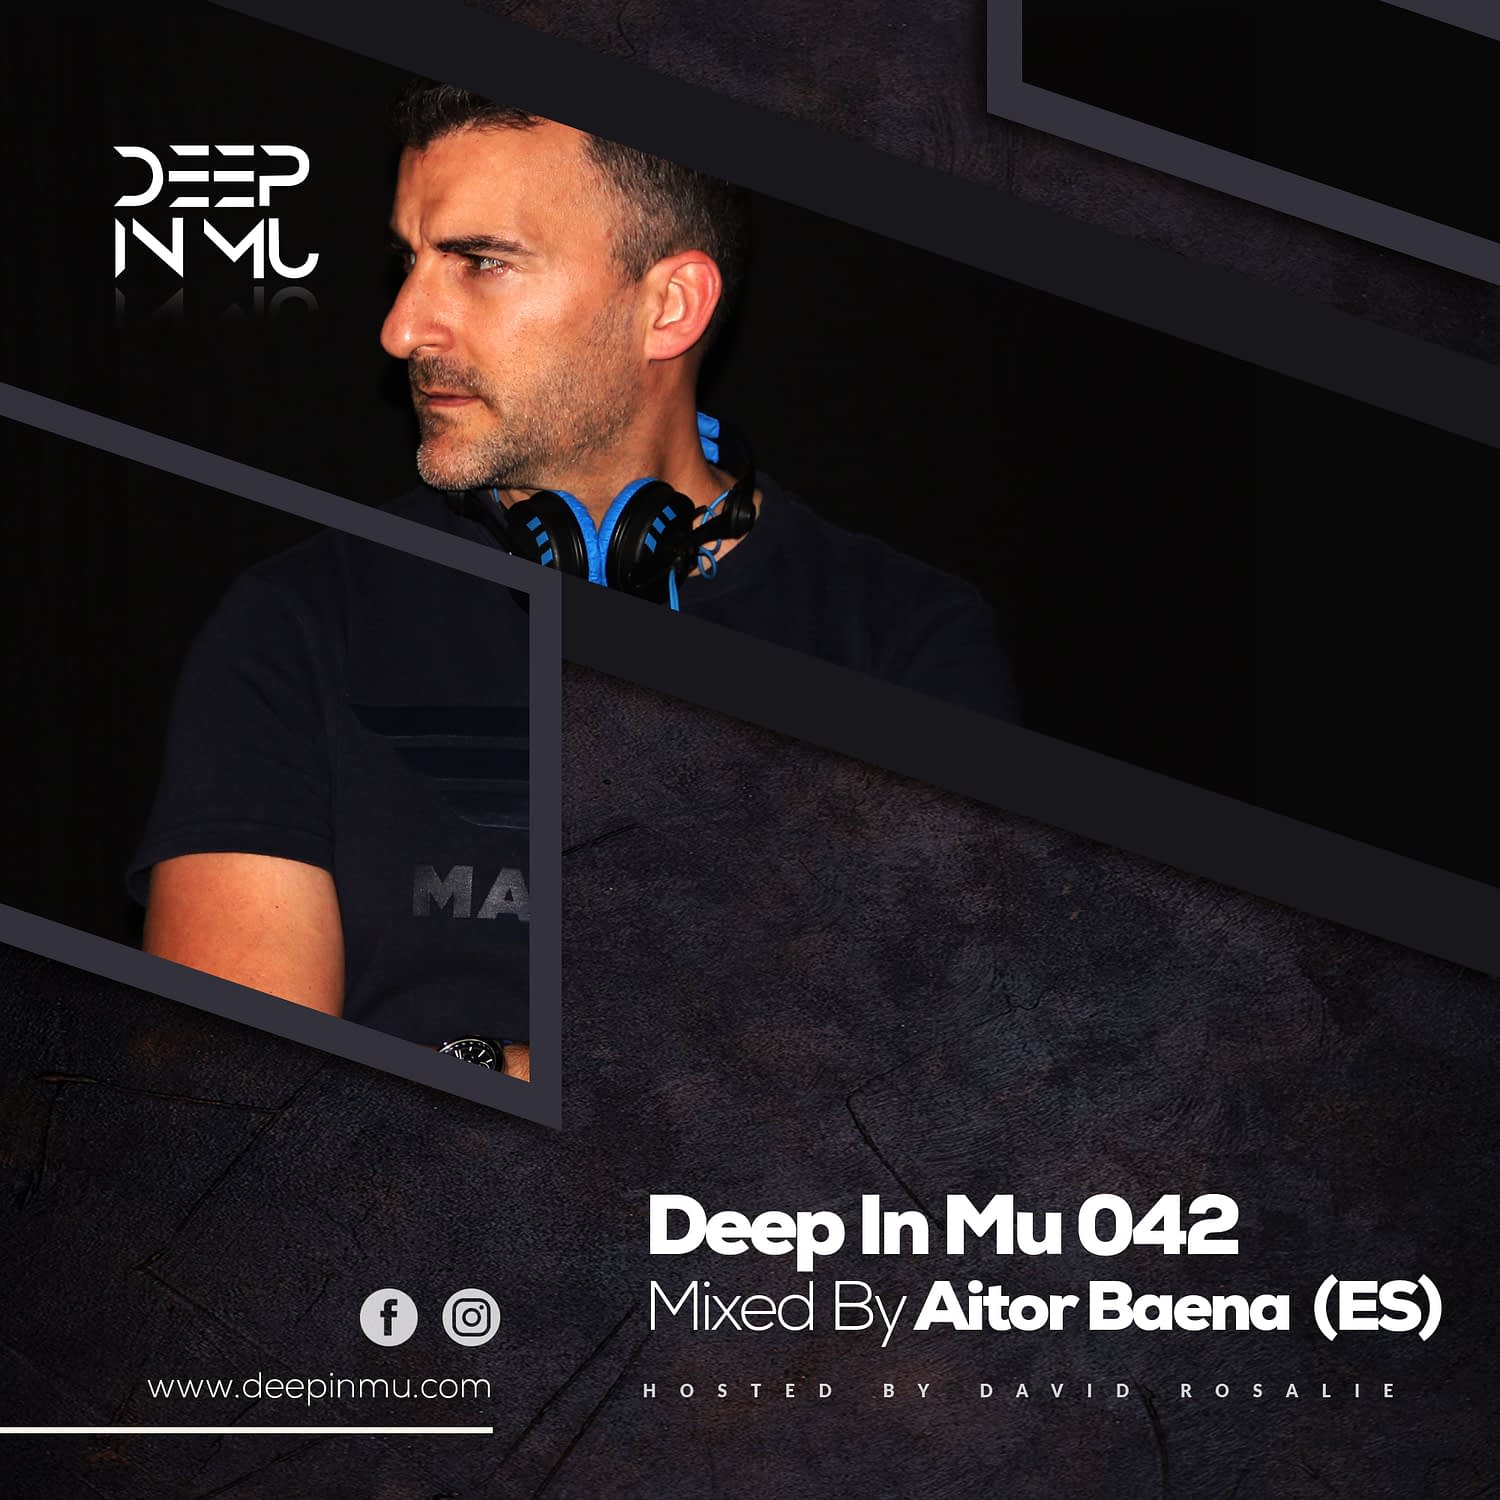 Deep in Mu 042 Mixed by Aitor Baena (ES)